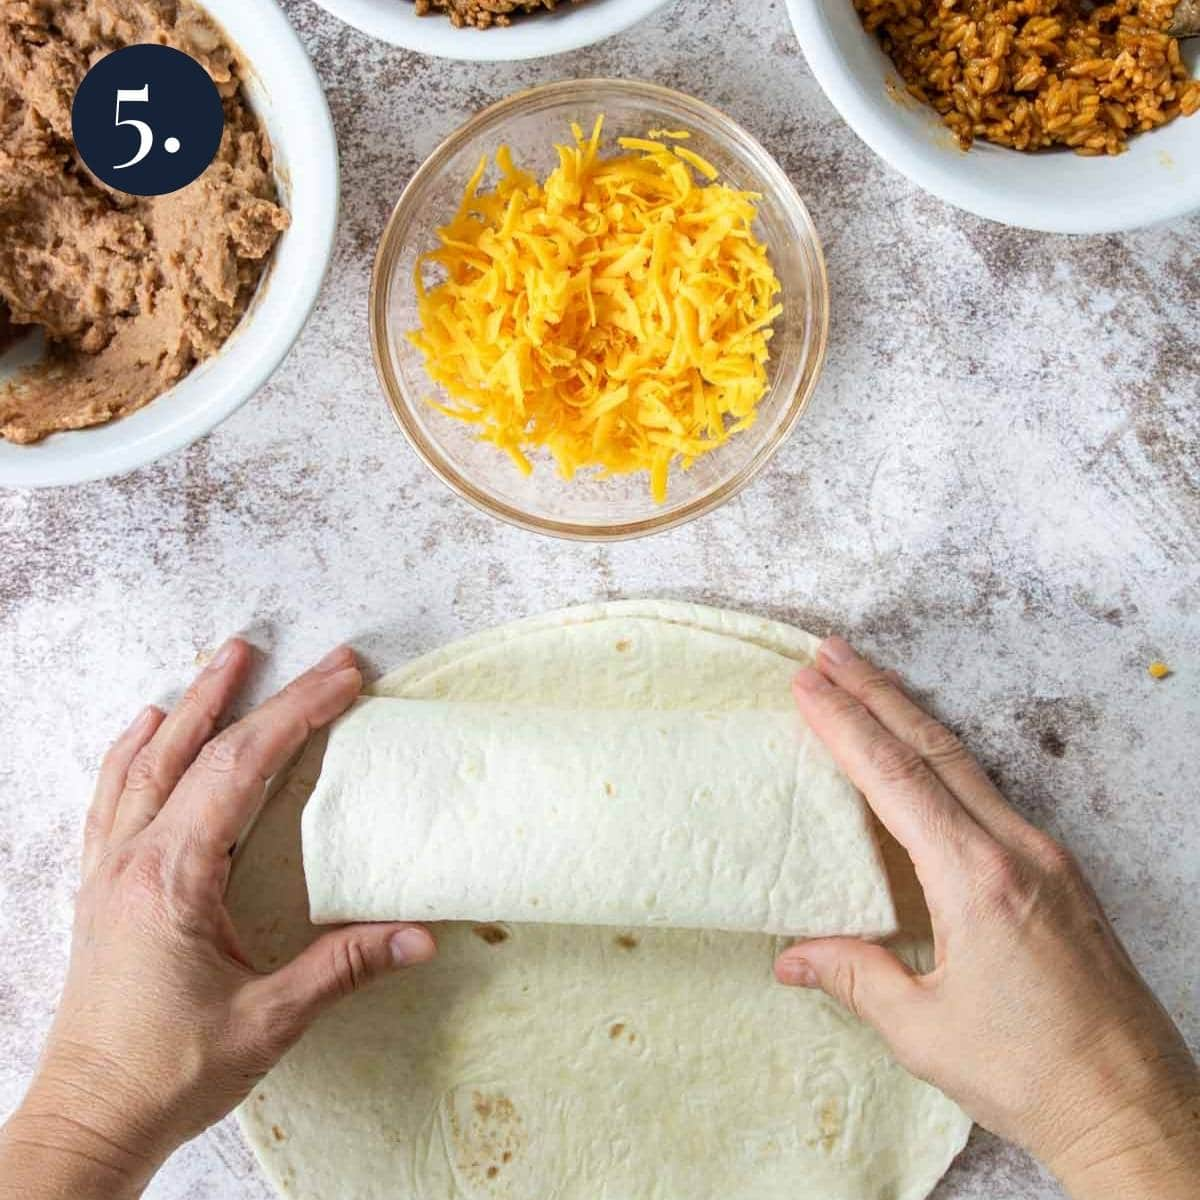 a rolled up burrito in a flour tortilla